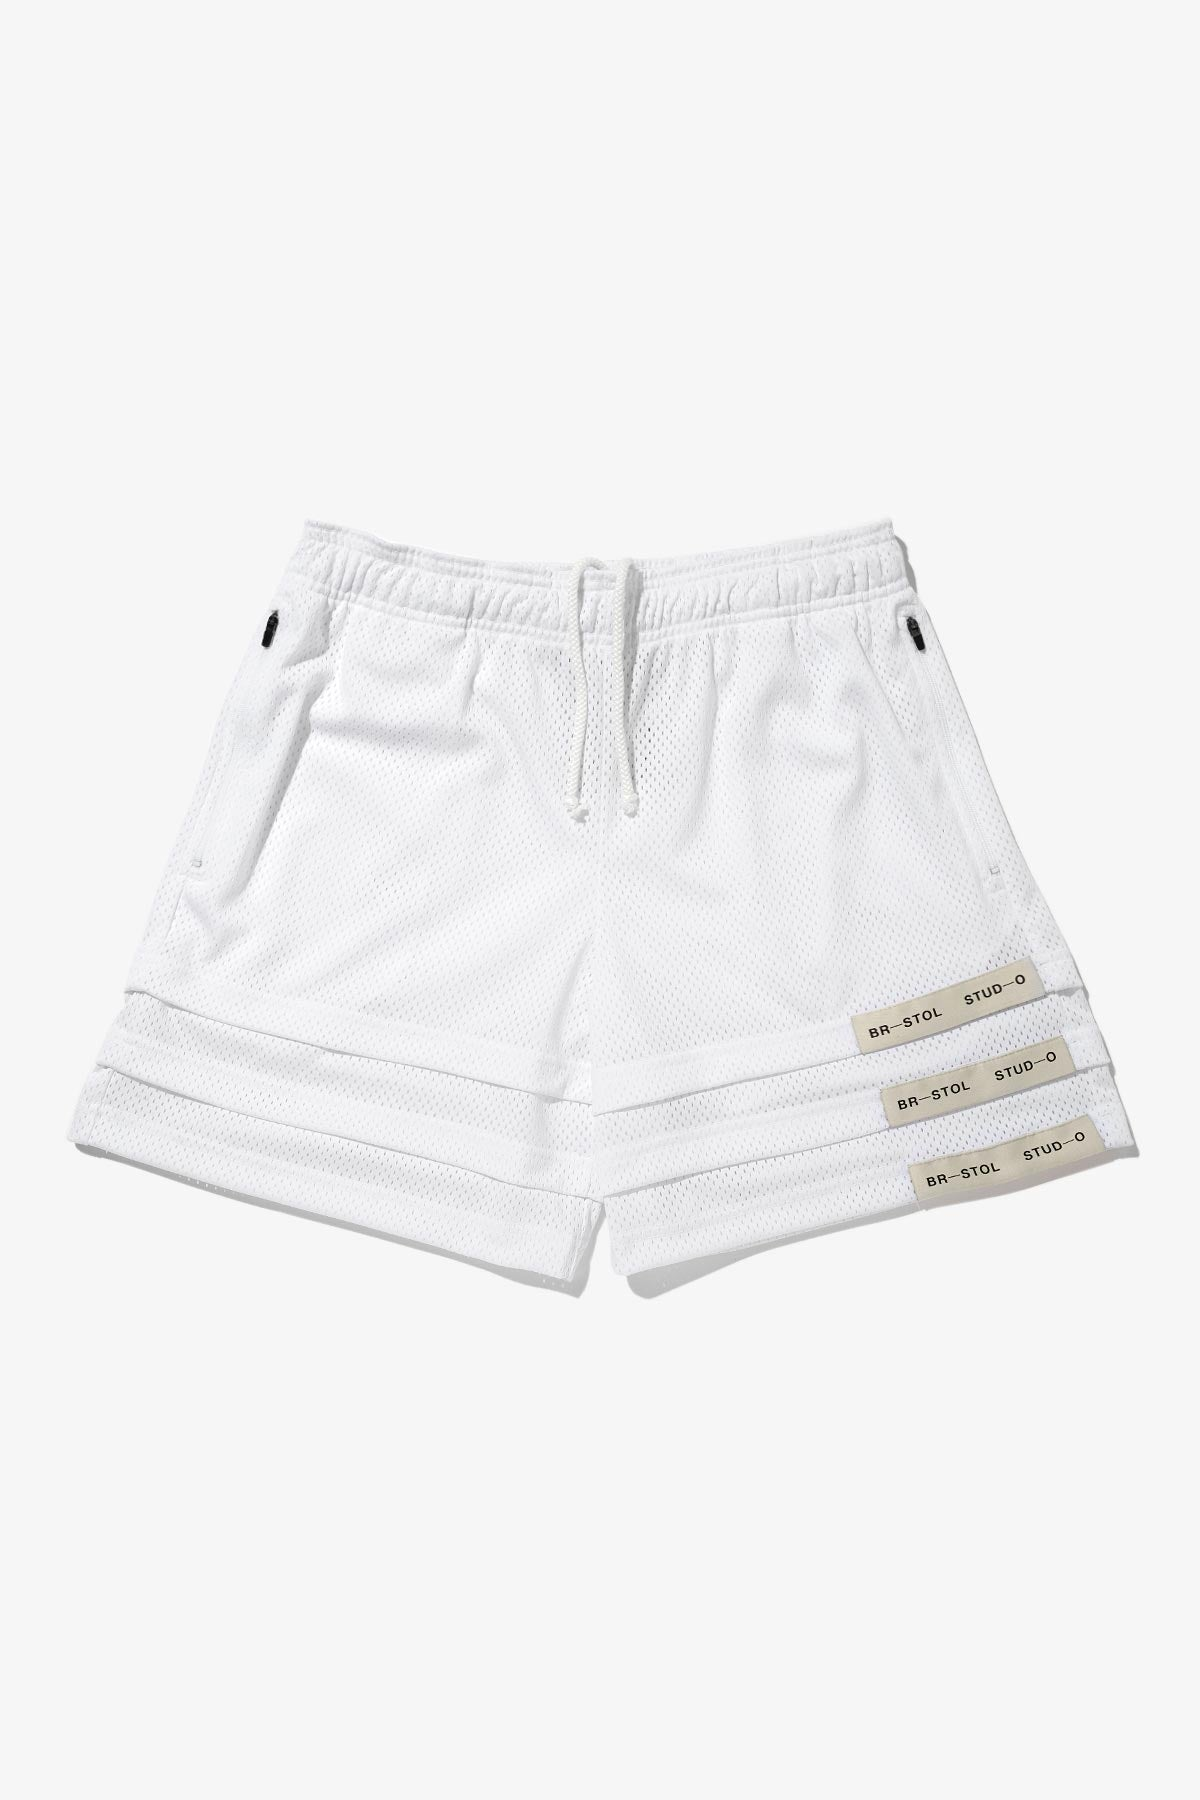 Triple Hem Shorts – White